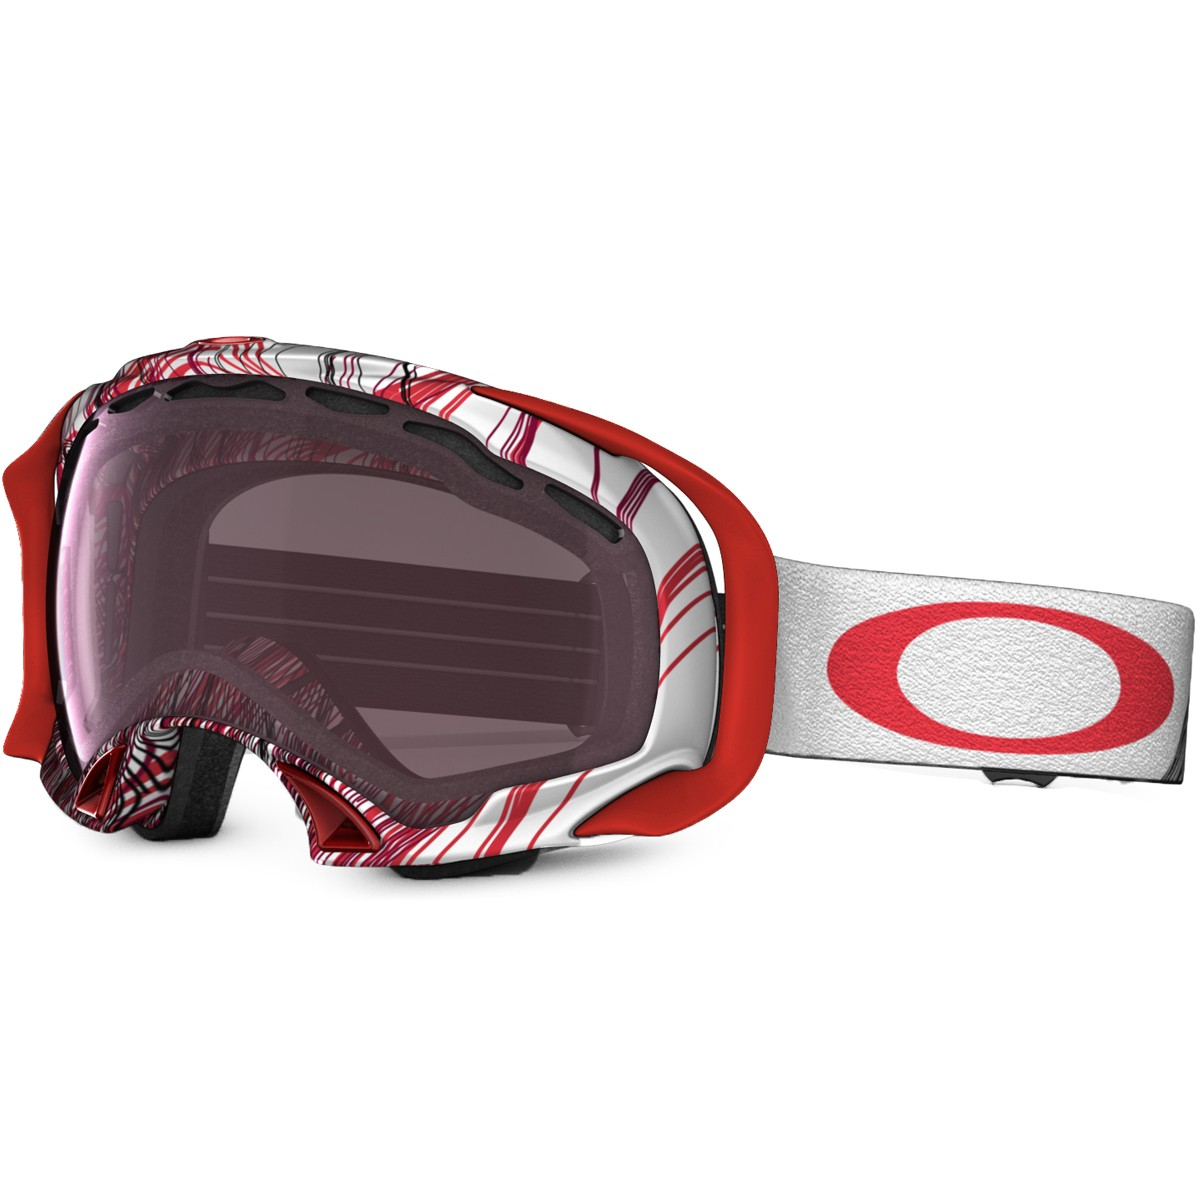 Oakley E Frames Snowboard Goggles United Nations System Chief Executives Board For Coordination